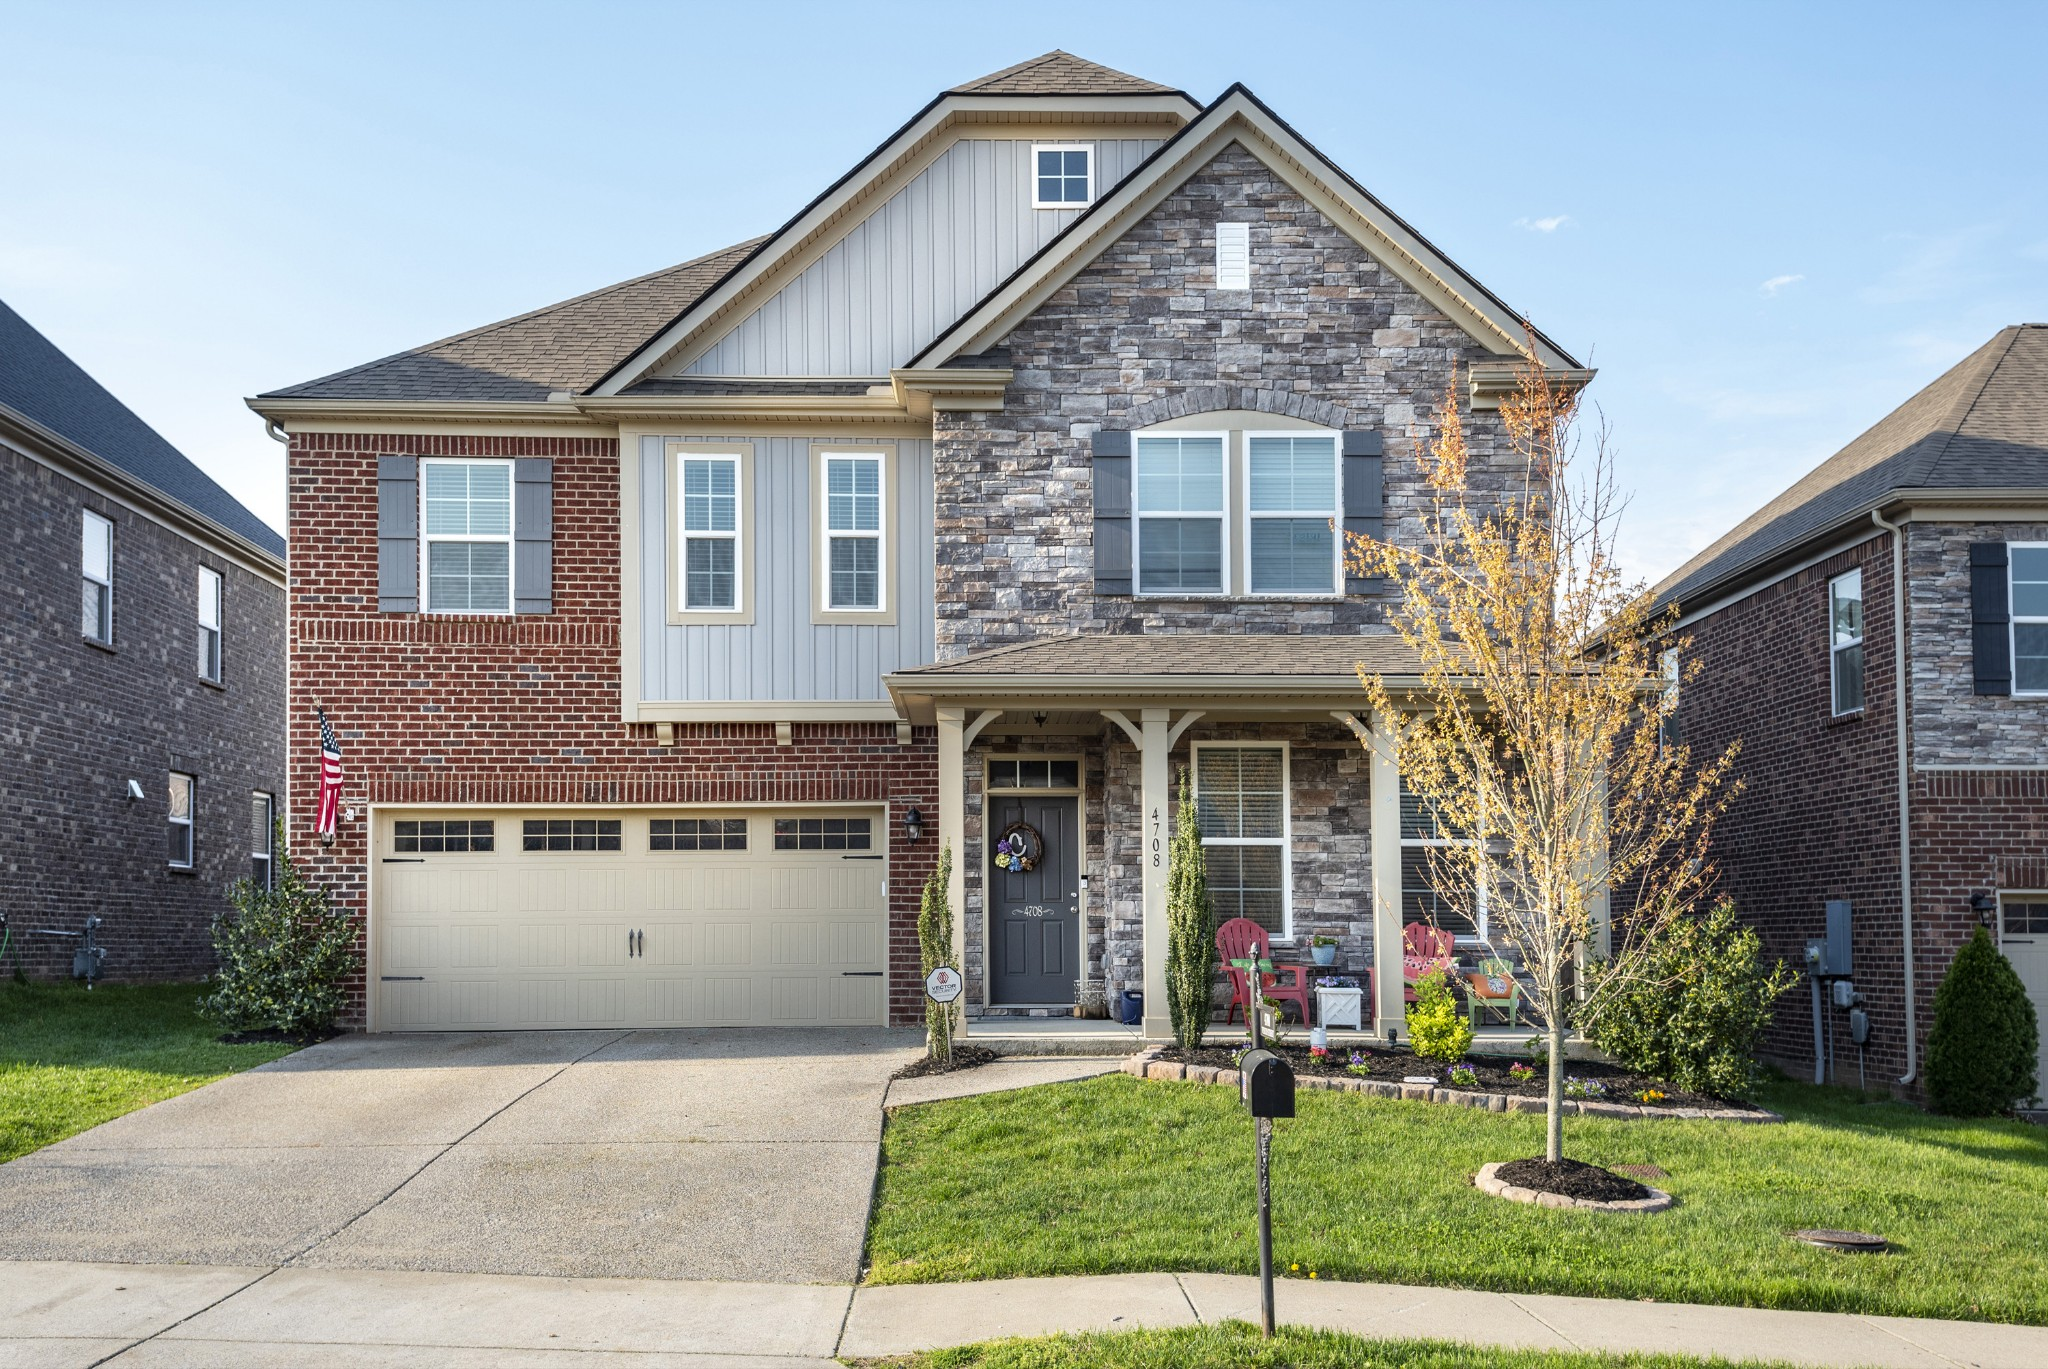 4708 Venito St Property Photo - Mount Juliet, TN real estate listing